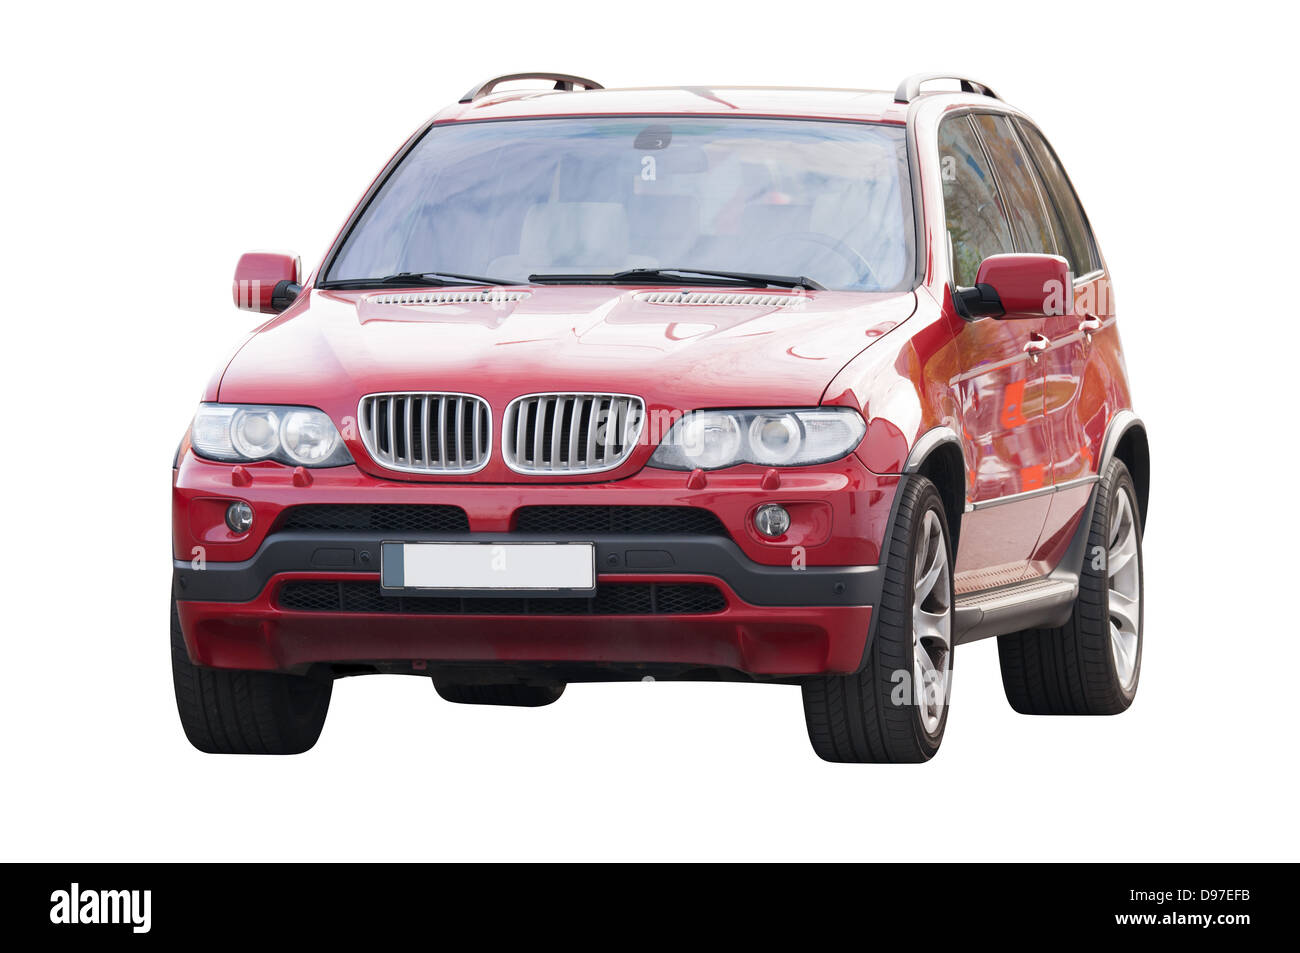 Sporty modern powerful german landscape car from 2000's - Stock Image